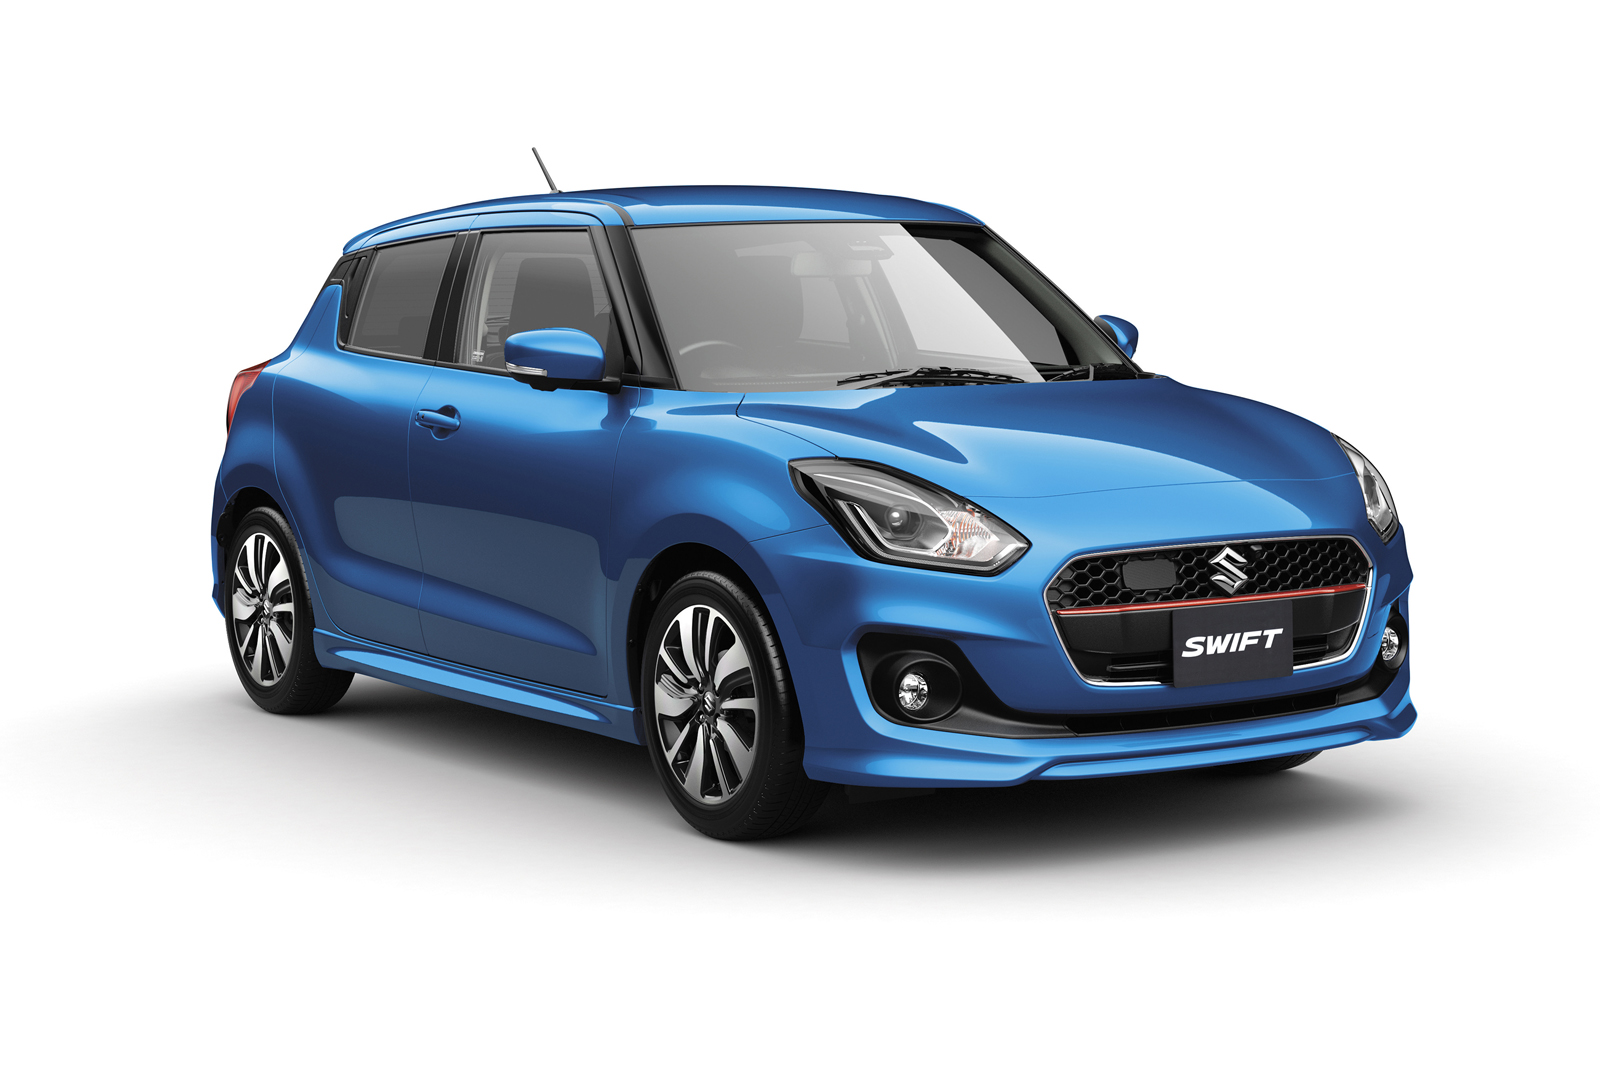 Suzuki Swift 2017 (11)